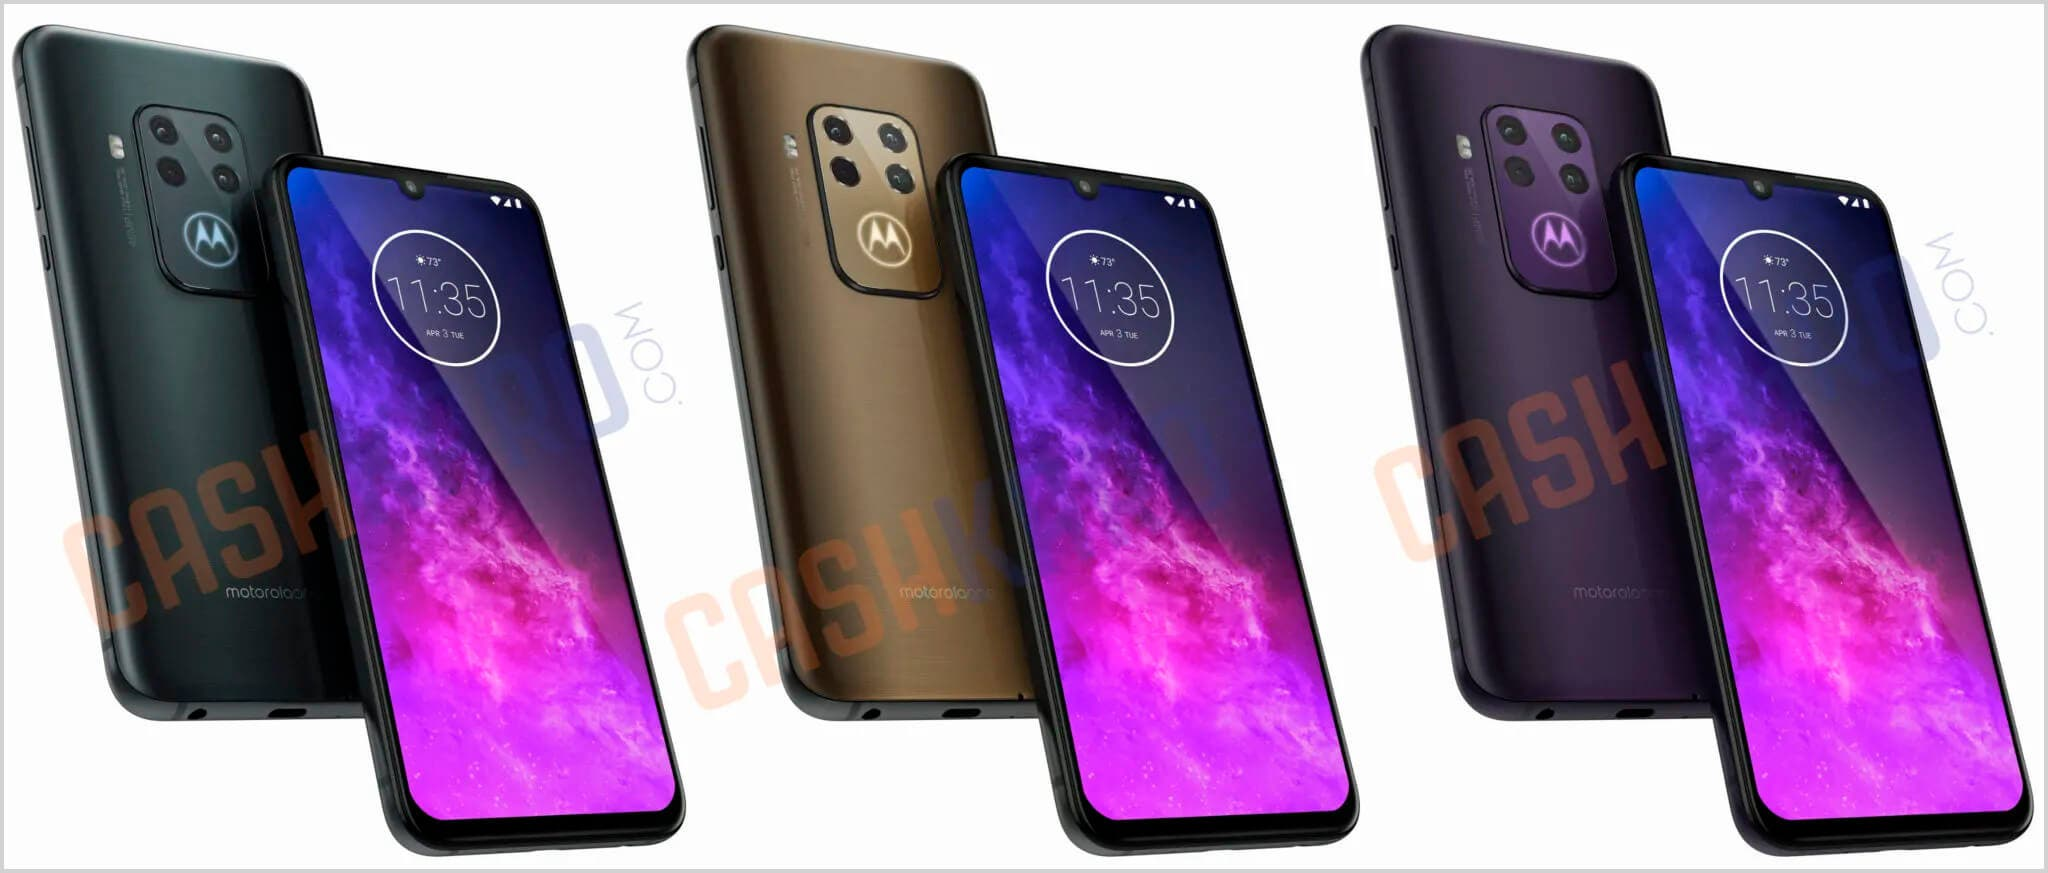 Colores del Motorola One Zoom